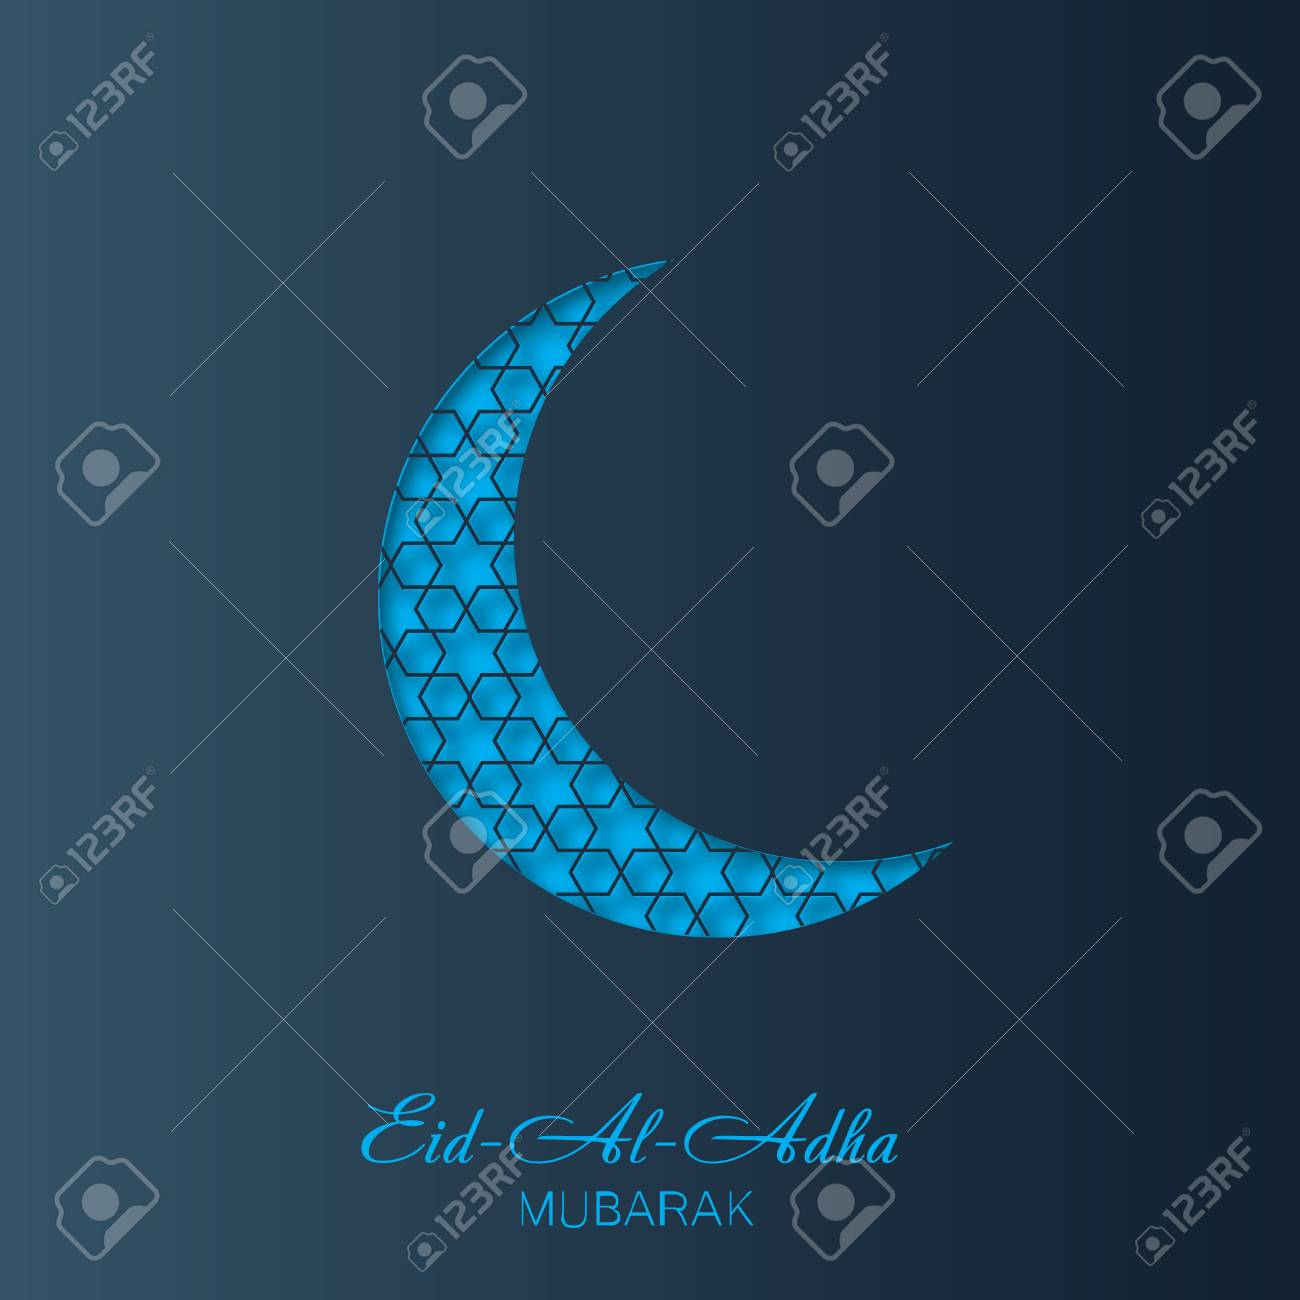 Eid al adha greeting card with crescent and islamic lantern eid al adha greeting card with crescent and islamic lantern vector stock vector m4hsunfo